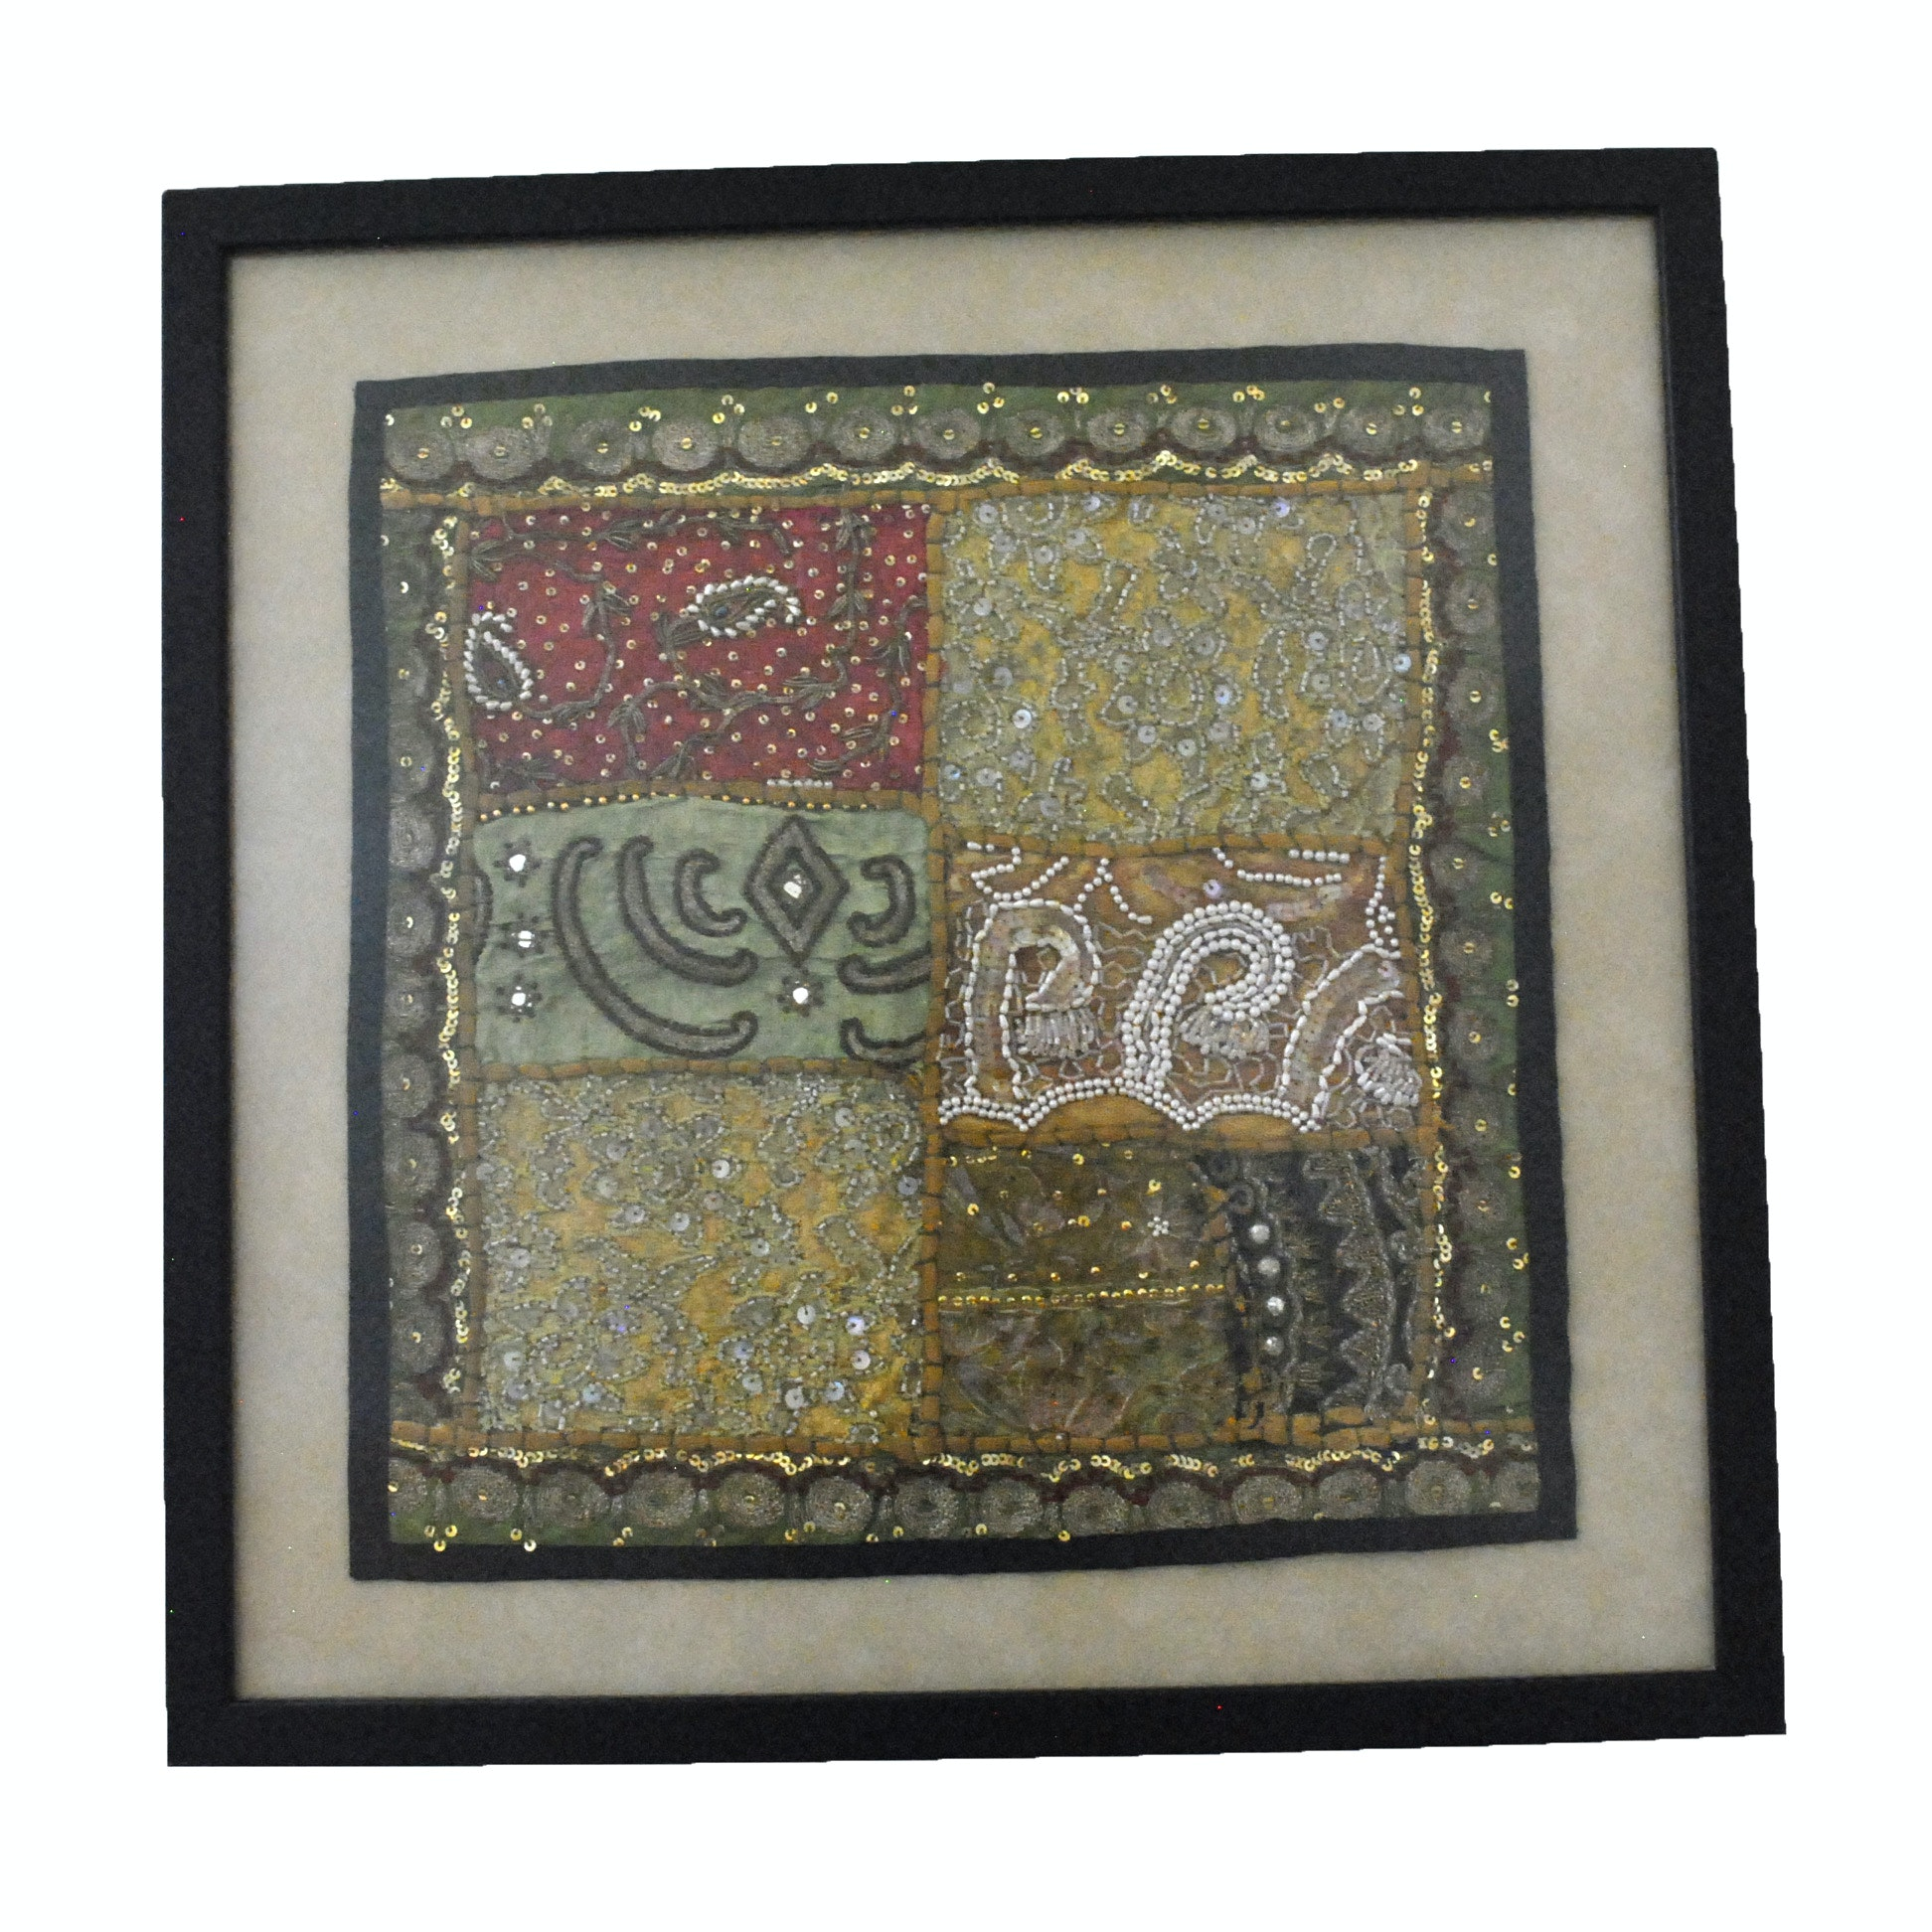 Framed Embroidered and Beaded Sari Style Textile Wall Hanging